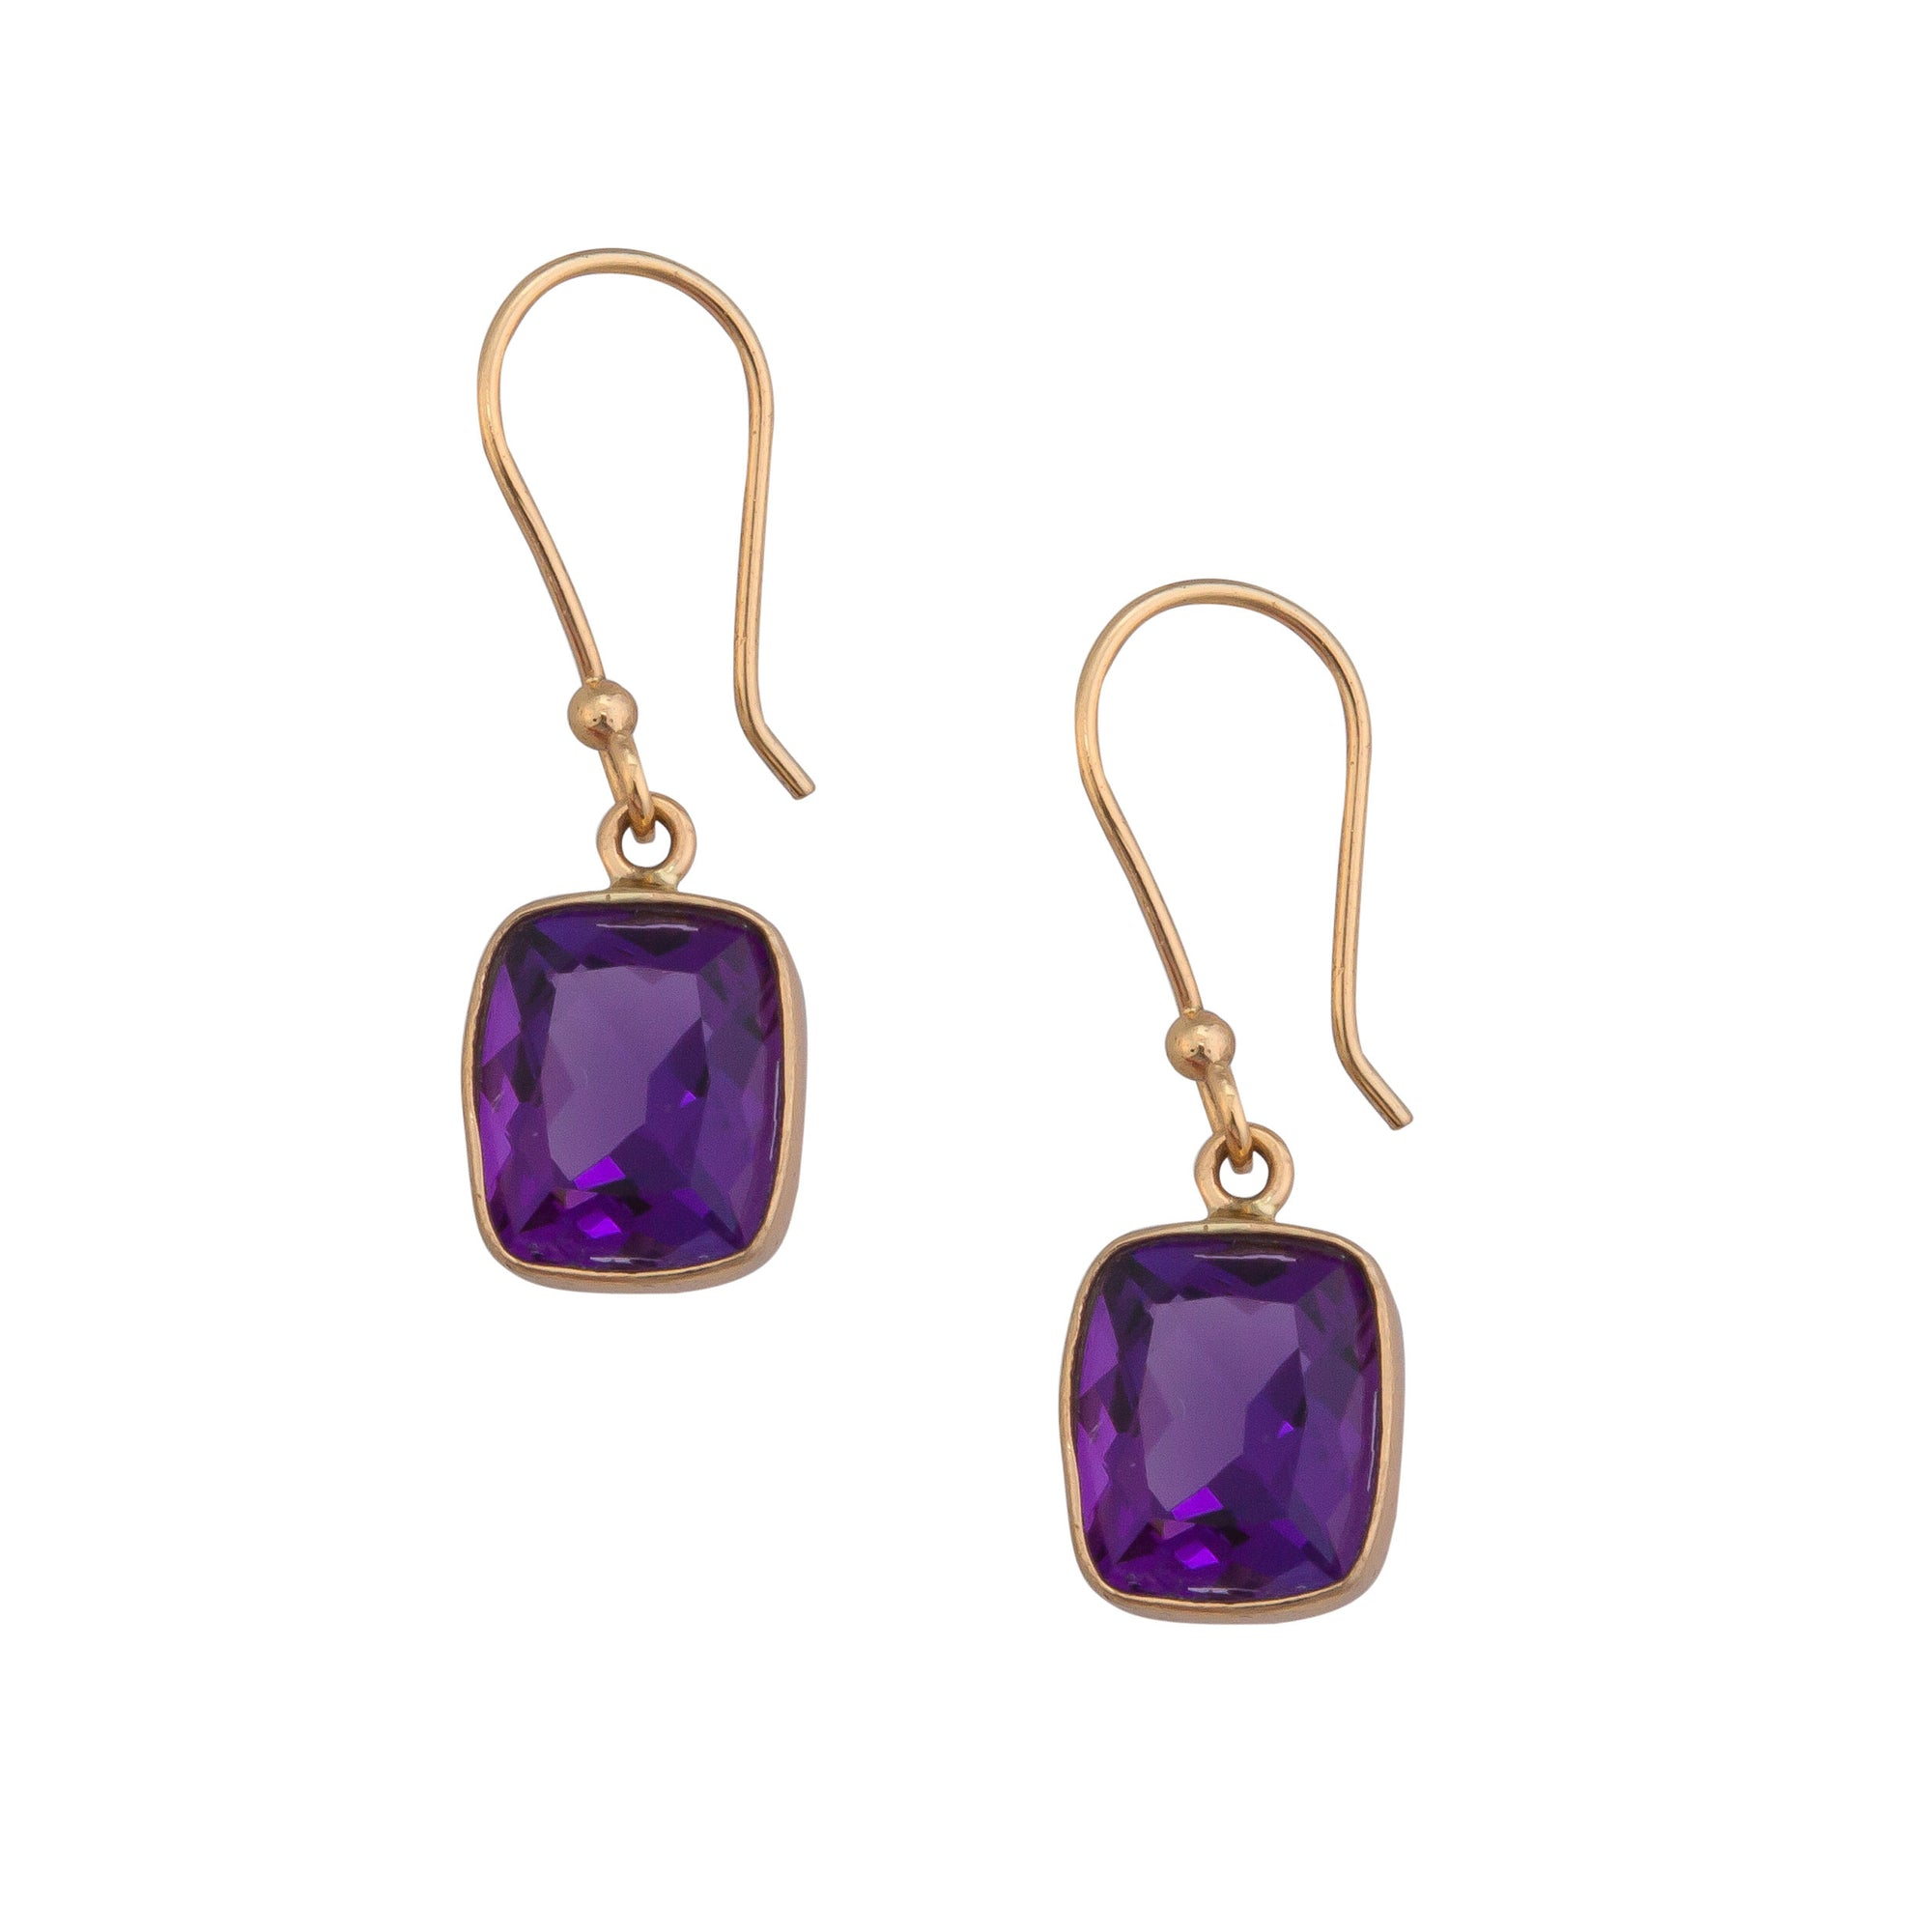 Alchemia Amethyst Rectangle Drop Earrings | Charles Albert Jewelry